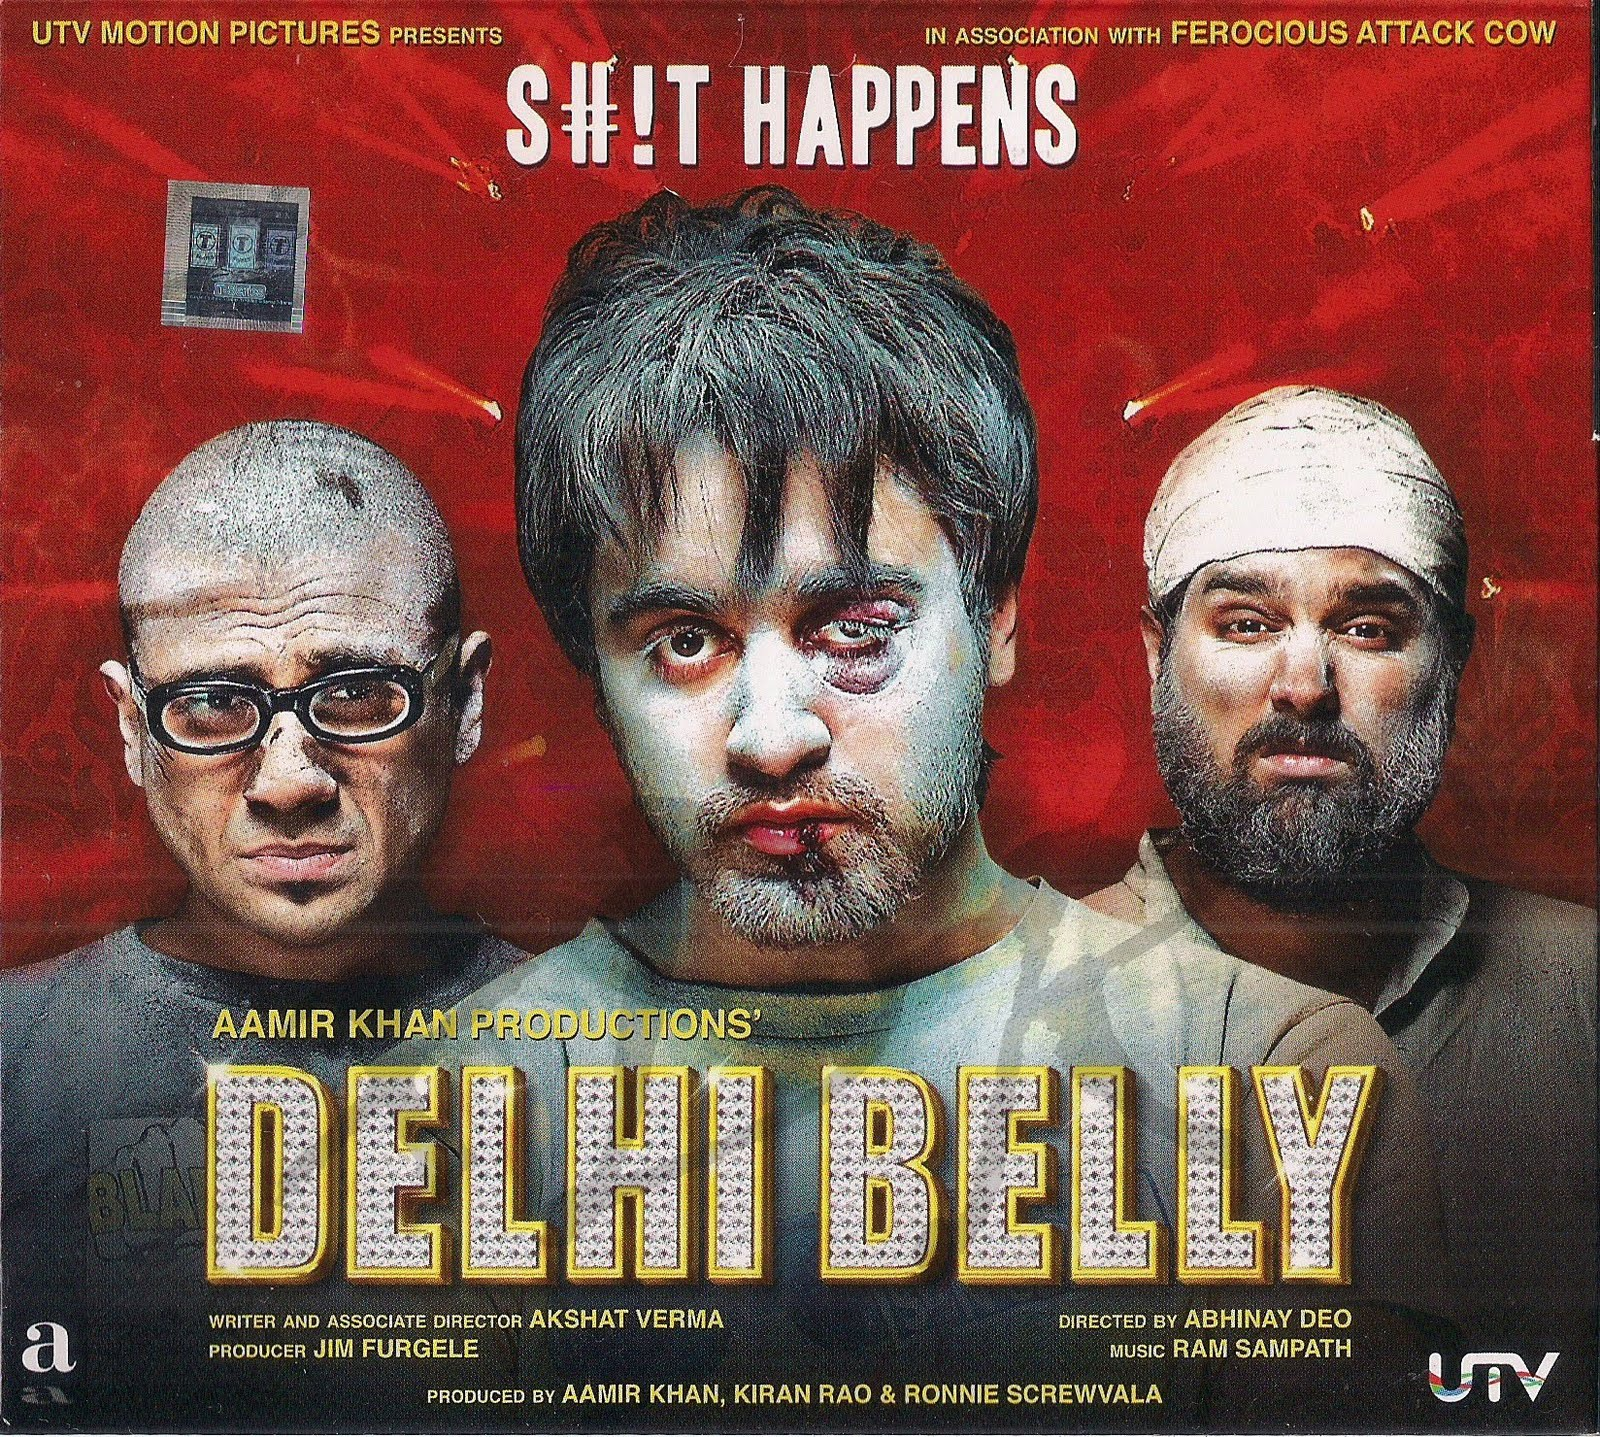 Delhi%2BBelly%2B2011%2BHindi%2BMovie%2Bposter%2Bwallapers Pedophile Released (2009) – Hollywood Movie Watch Online